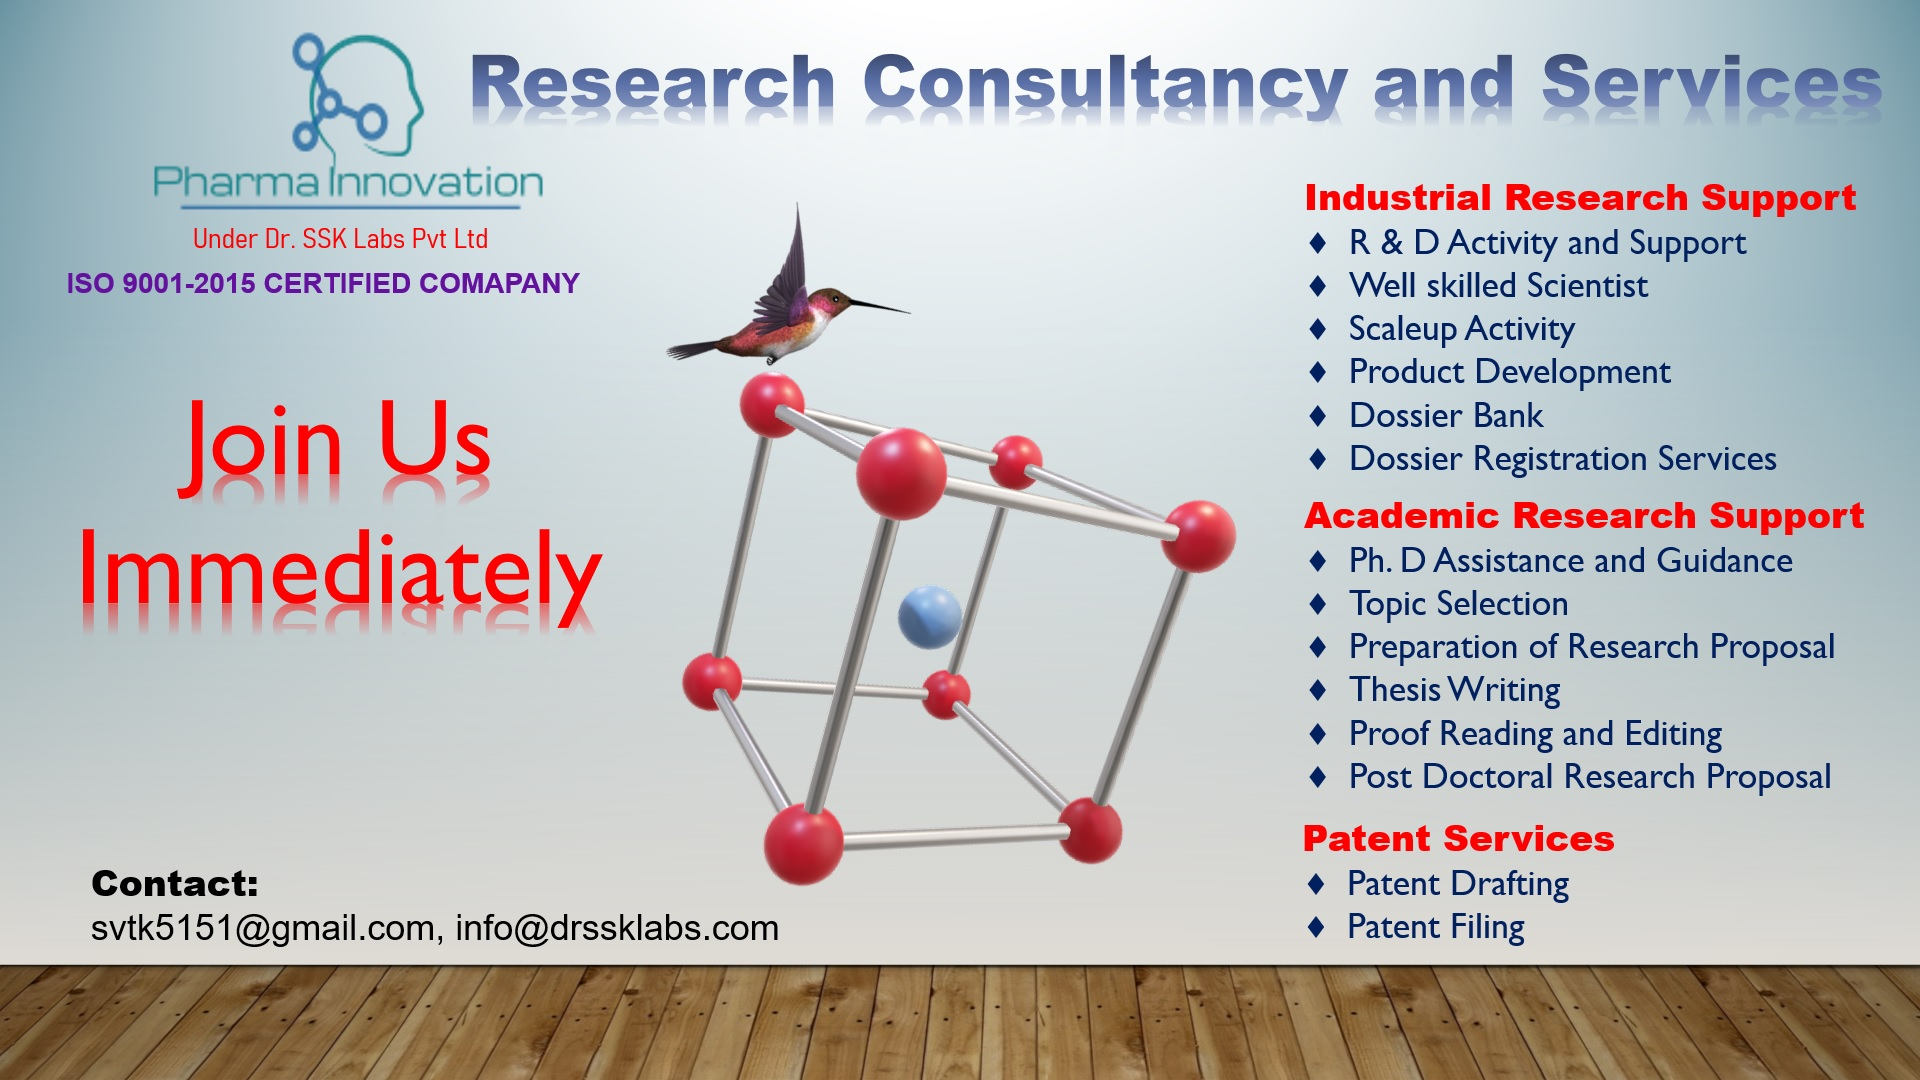 research-consultancy-and-services